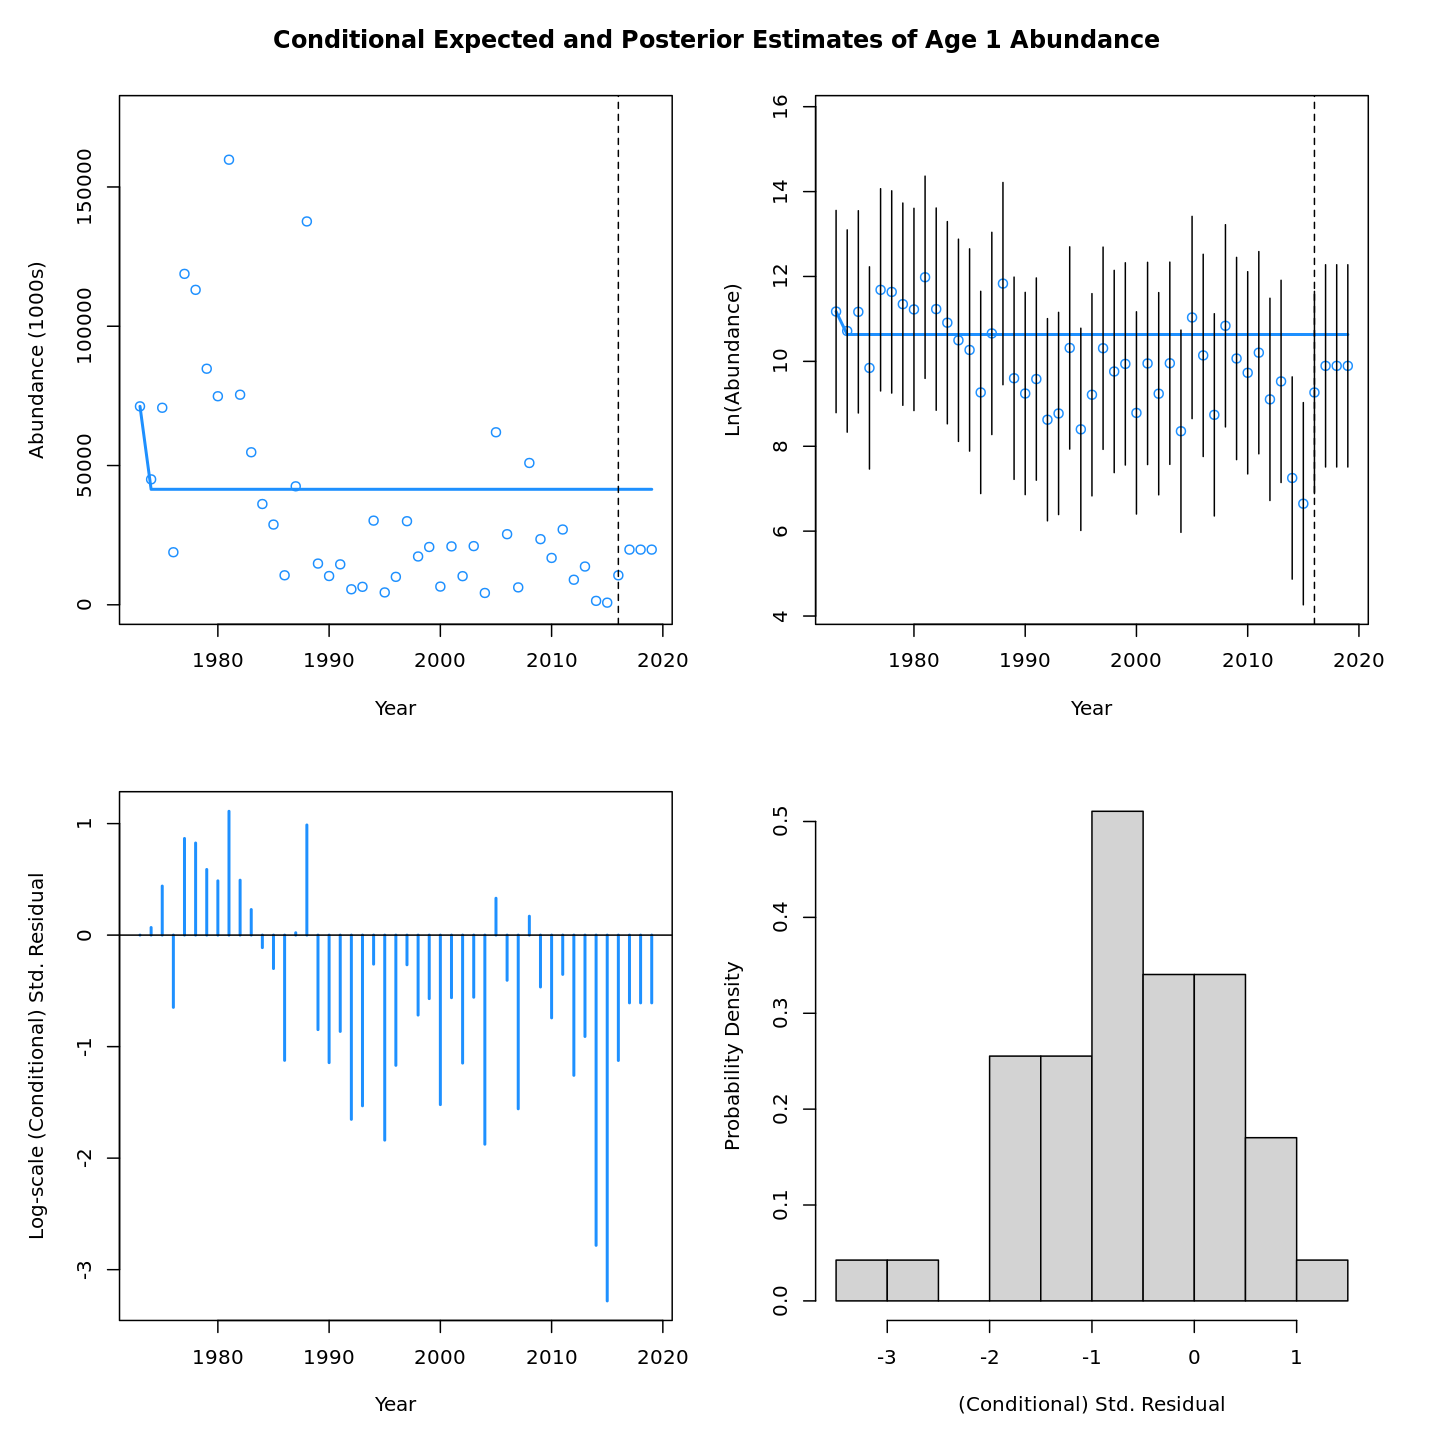 Conditional expected and posterior estimates of age-1 abundance (recruitment).